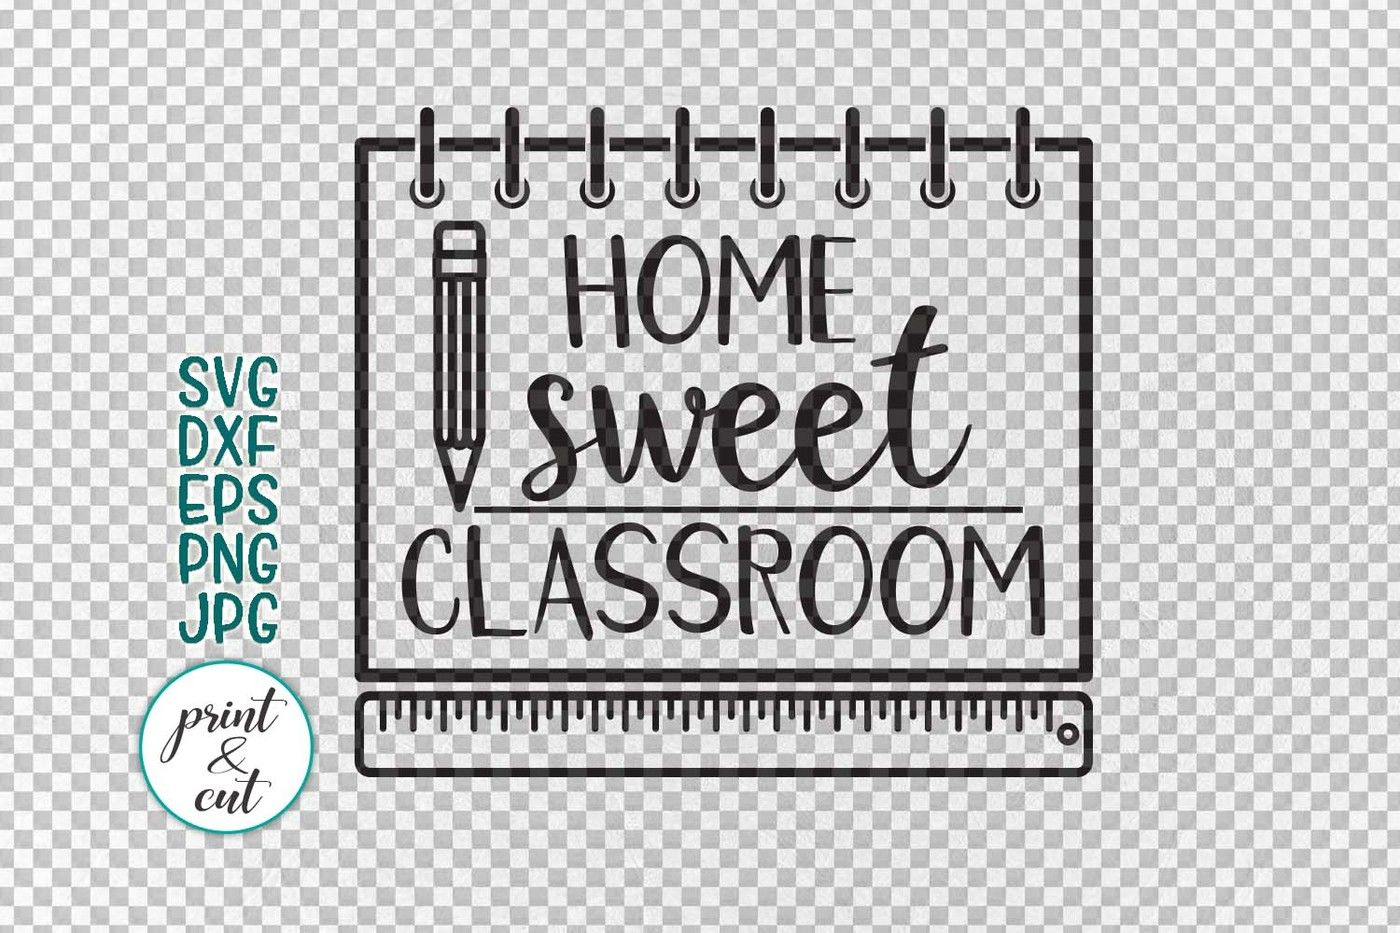 Home Sweet Classroom Sign Svg Dxf For Cut Or Jpg Png Print By